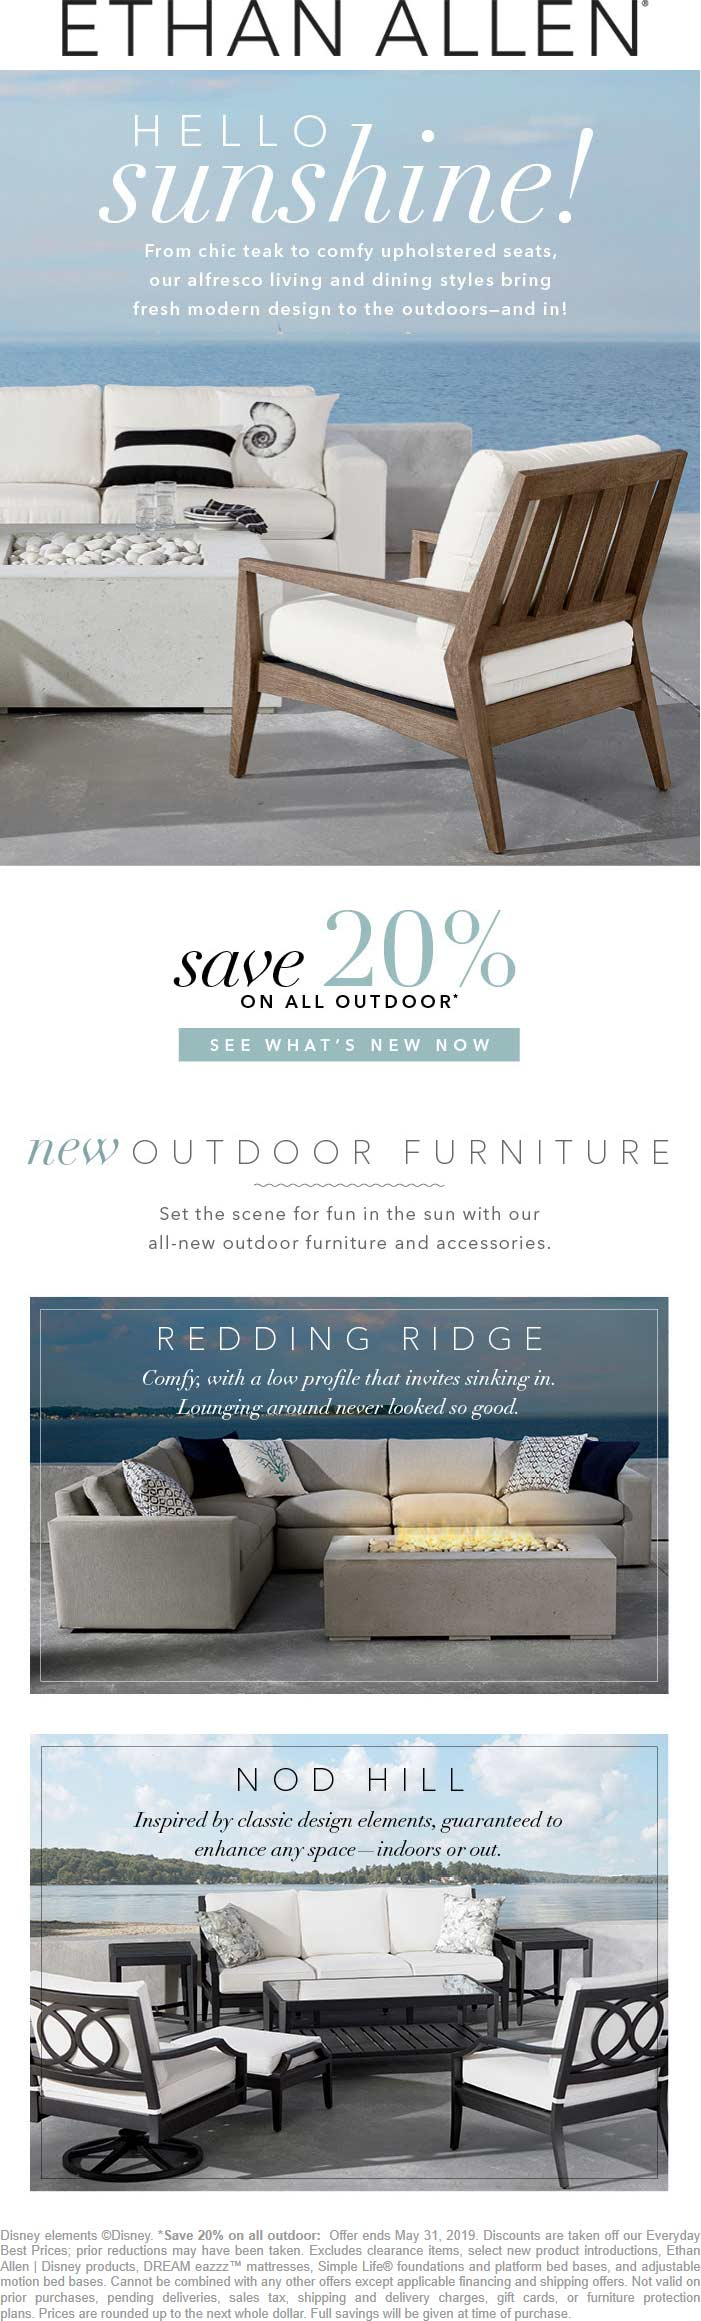 Ethan Allen Coupon October 2019 20% off outdoor at Ethan Allen, ditto online